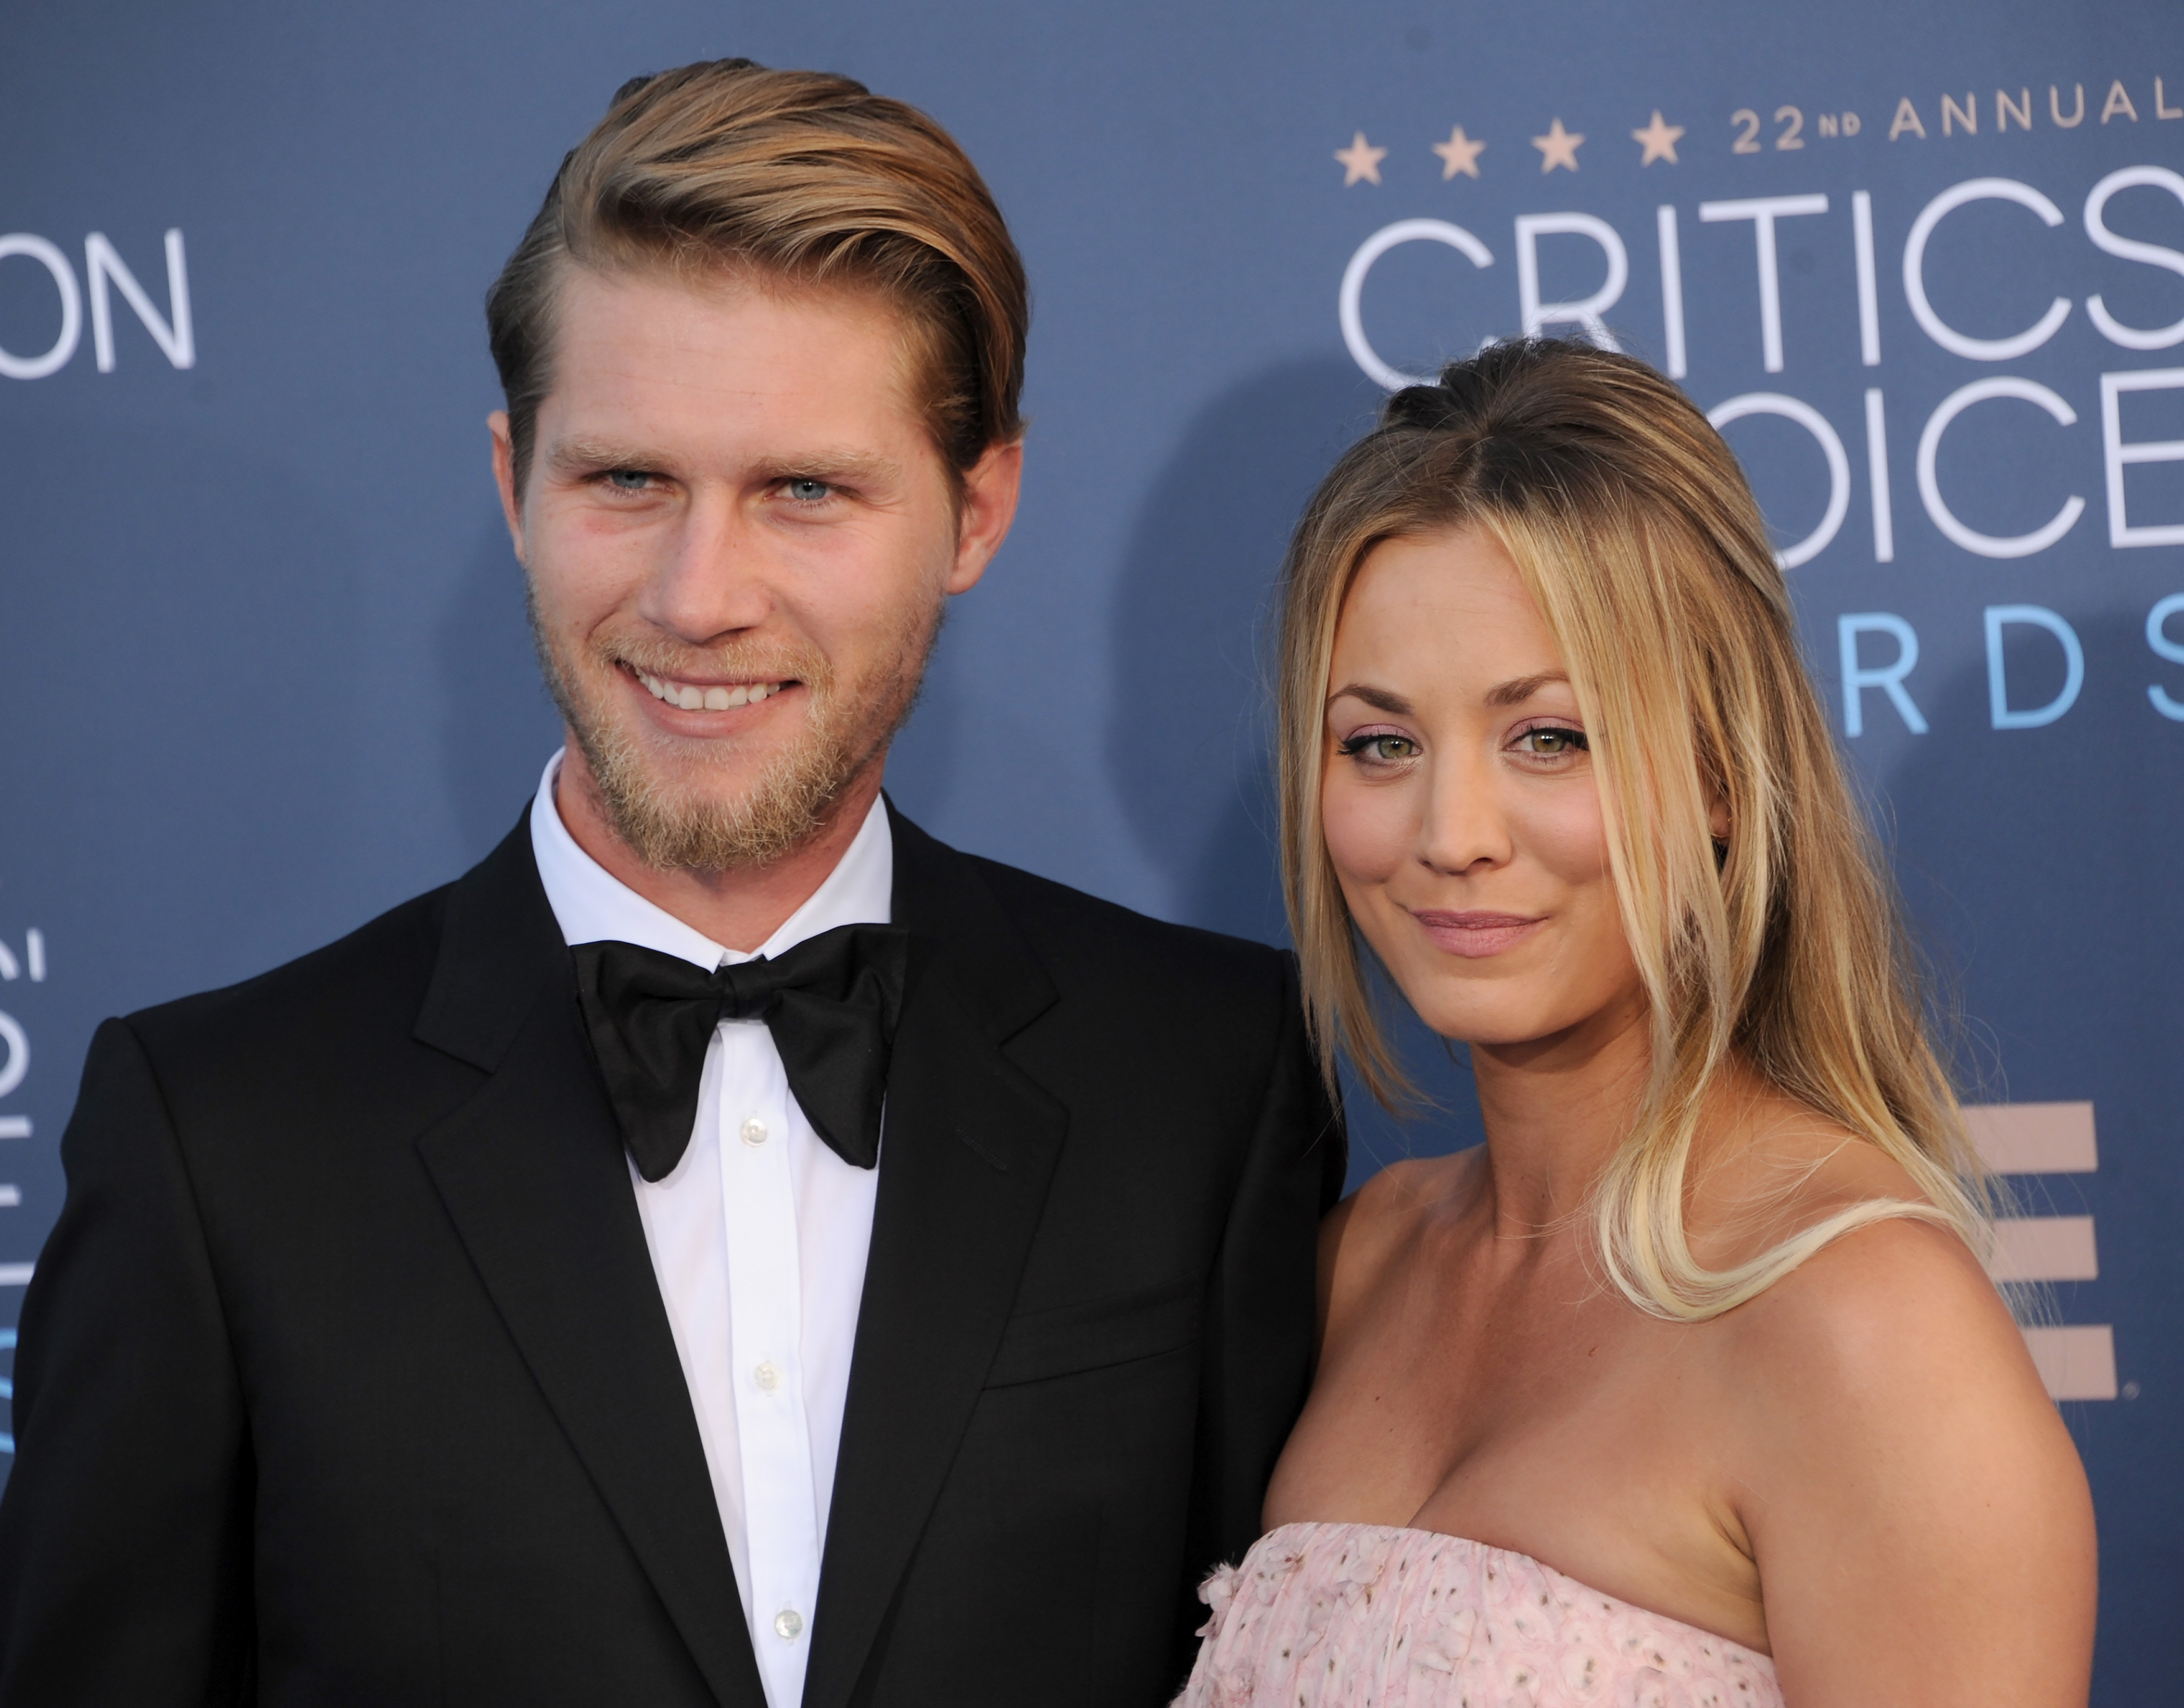 """Kaley Cuoco and her husband, Karl Cook attending the """"Critics Choice Awards"""" in Santa Barbara, in December, 2016. 